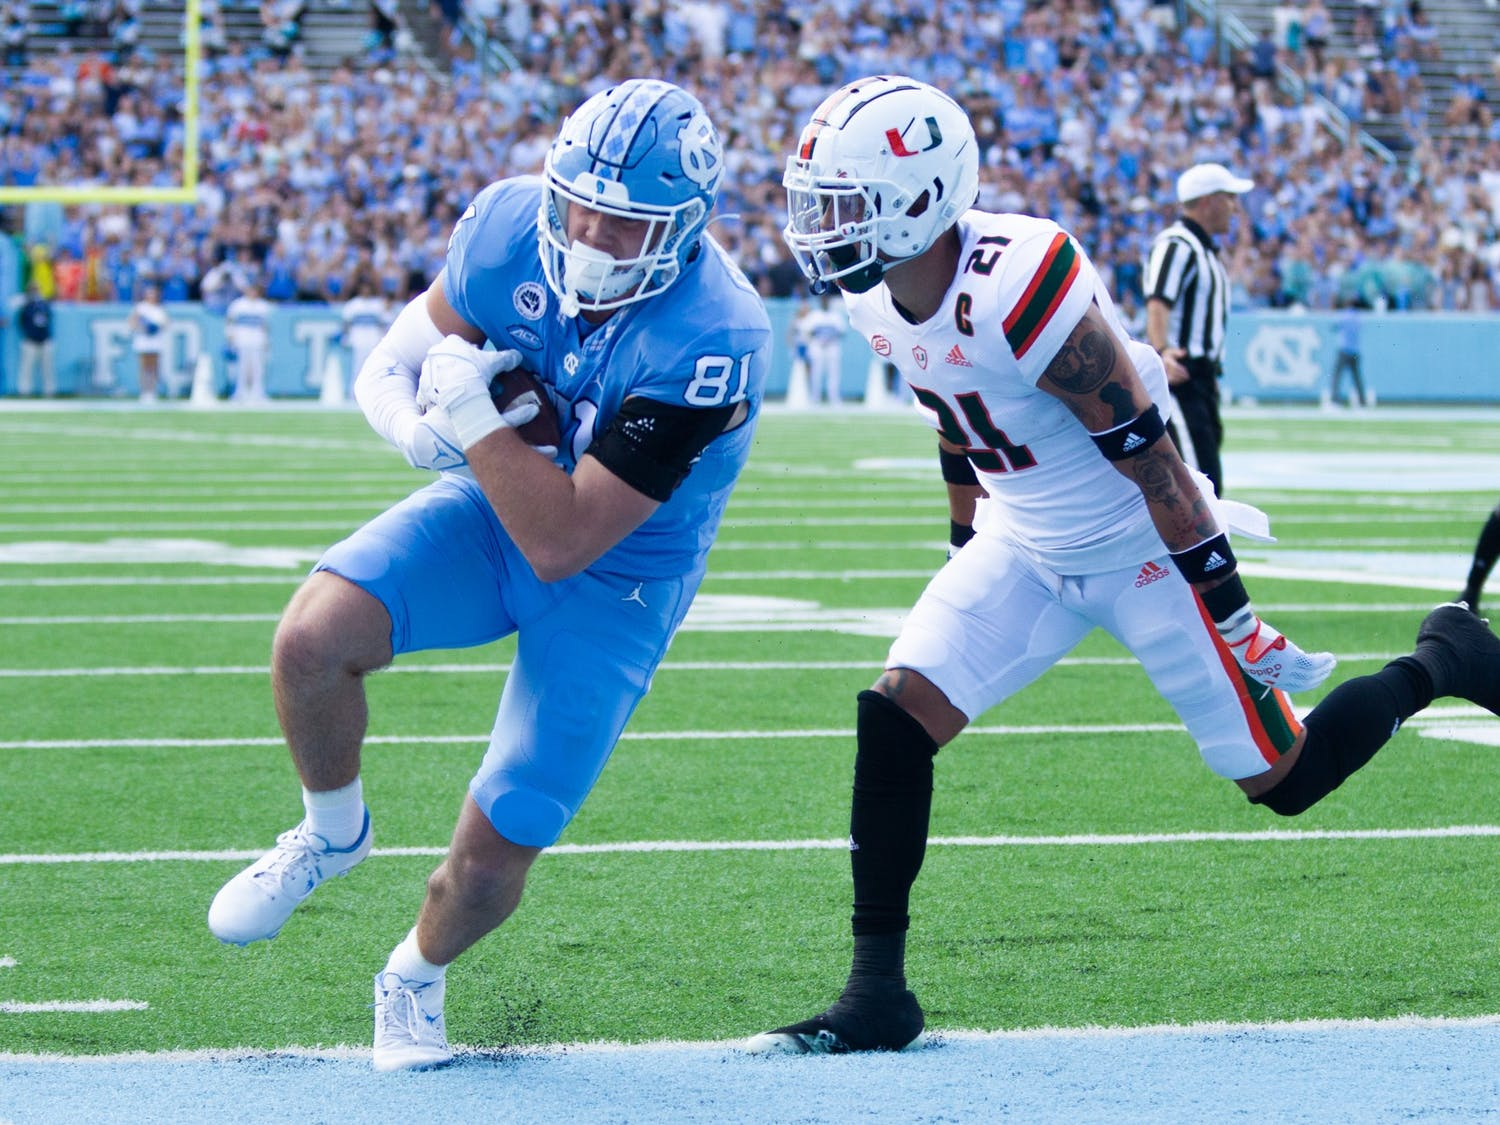 Redshirt first-year tight end John Copenhaver (81) scores a touchdown at the game against Miami on Oct. 16 at Kenan Stadium. UNC won 45-42.